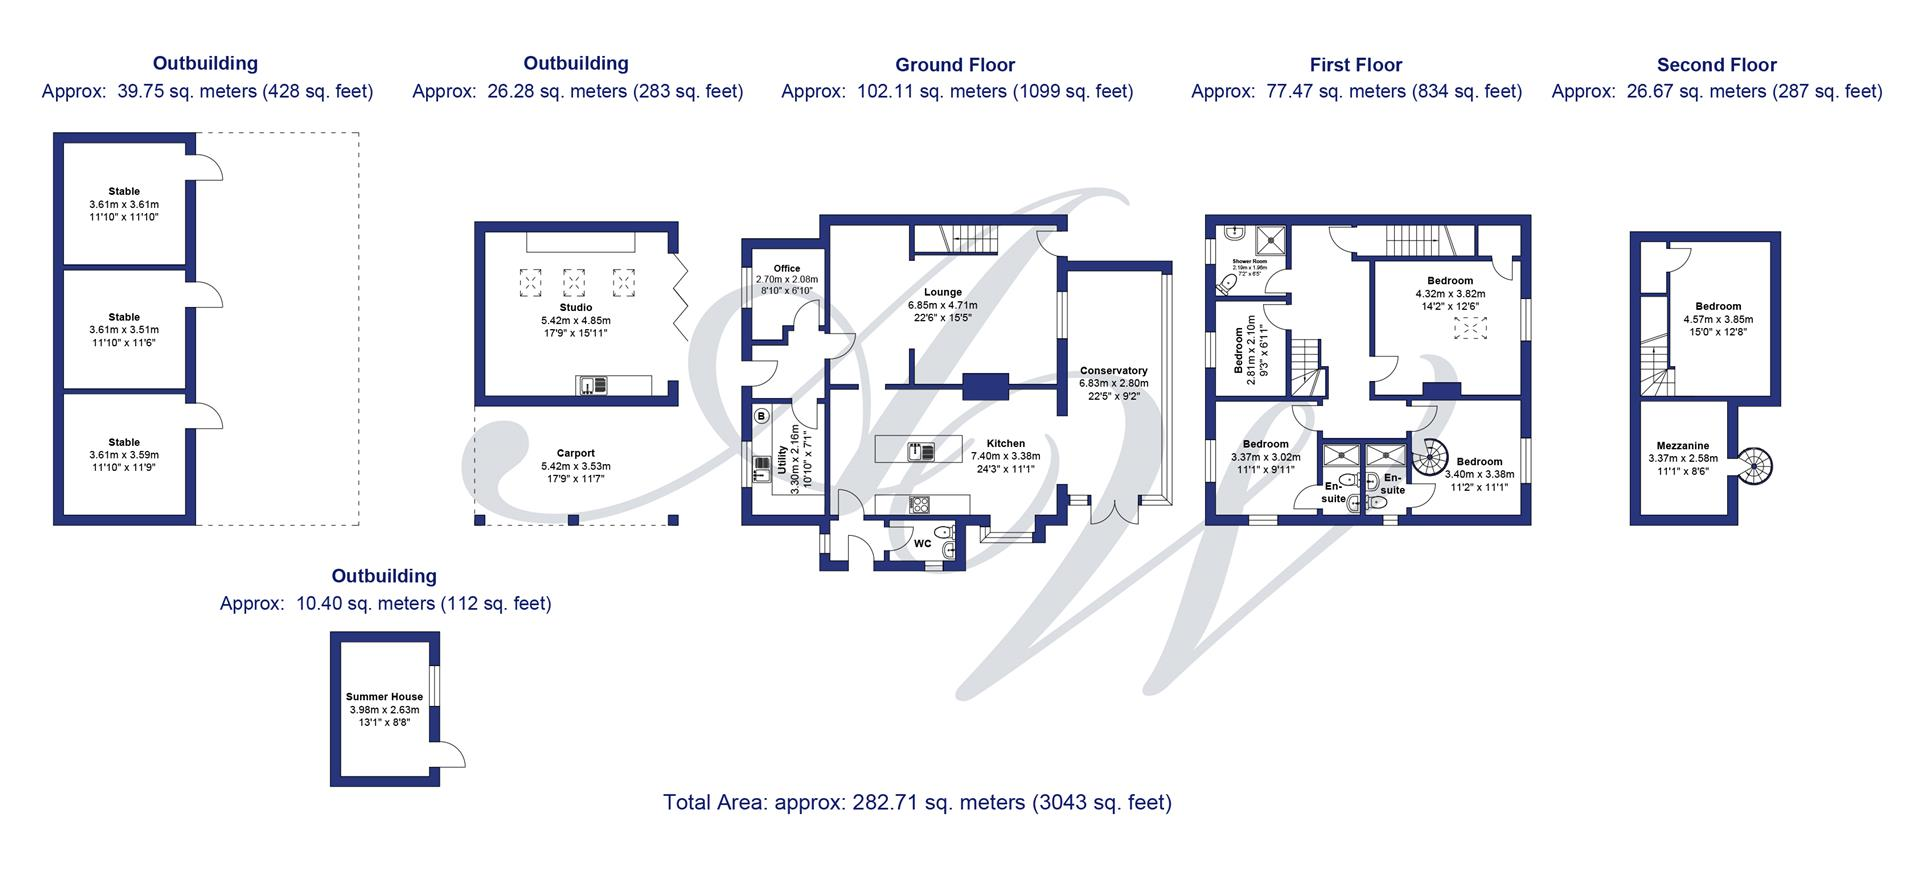 4 bedroom house For Sale in Bolton - Edgefoot Cottage plan.jpg.